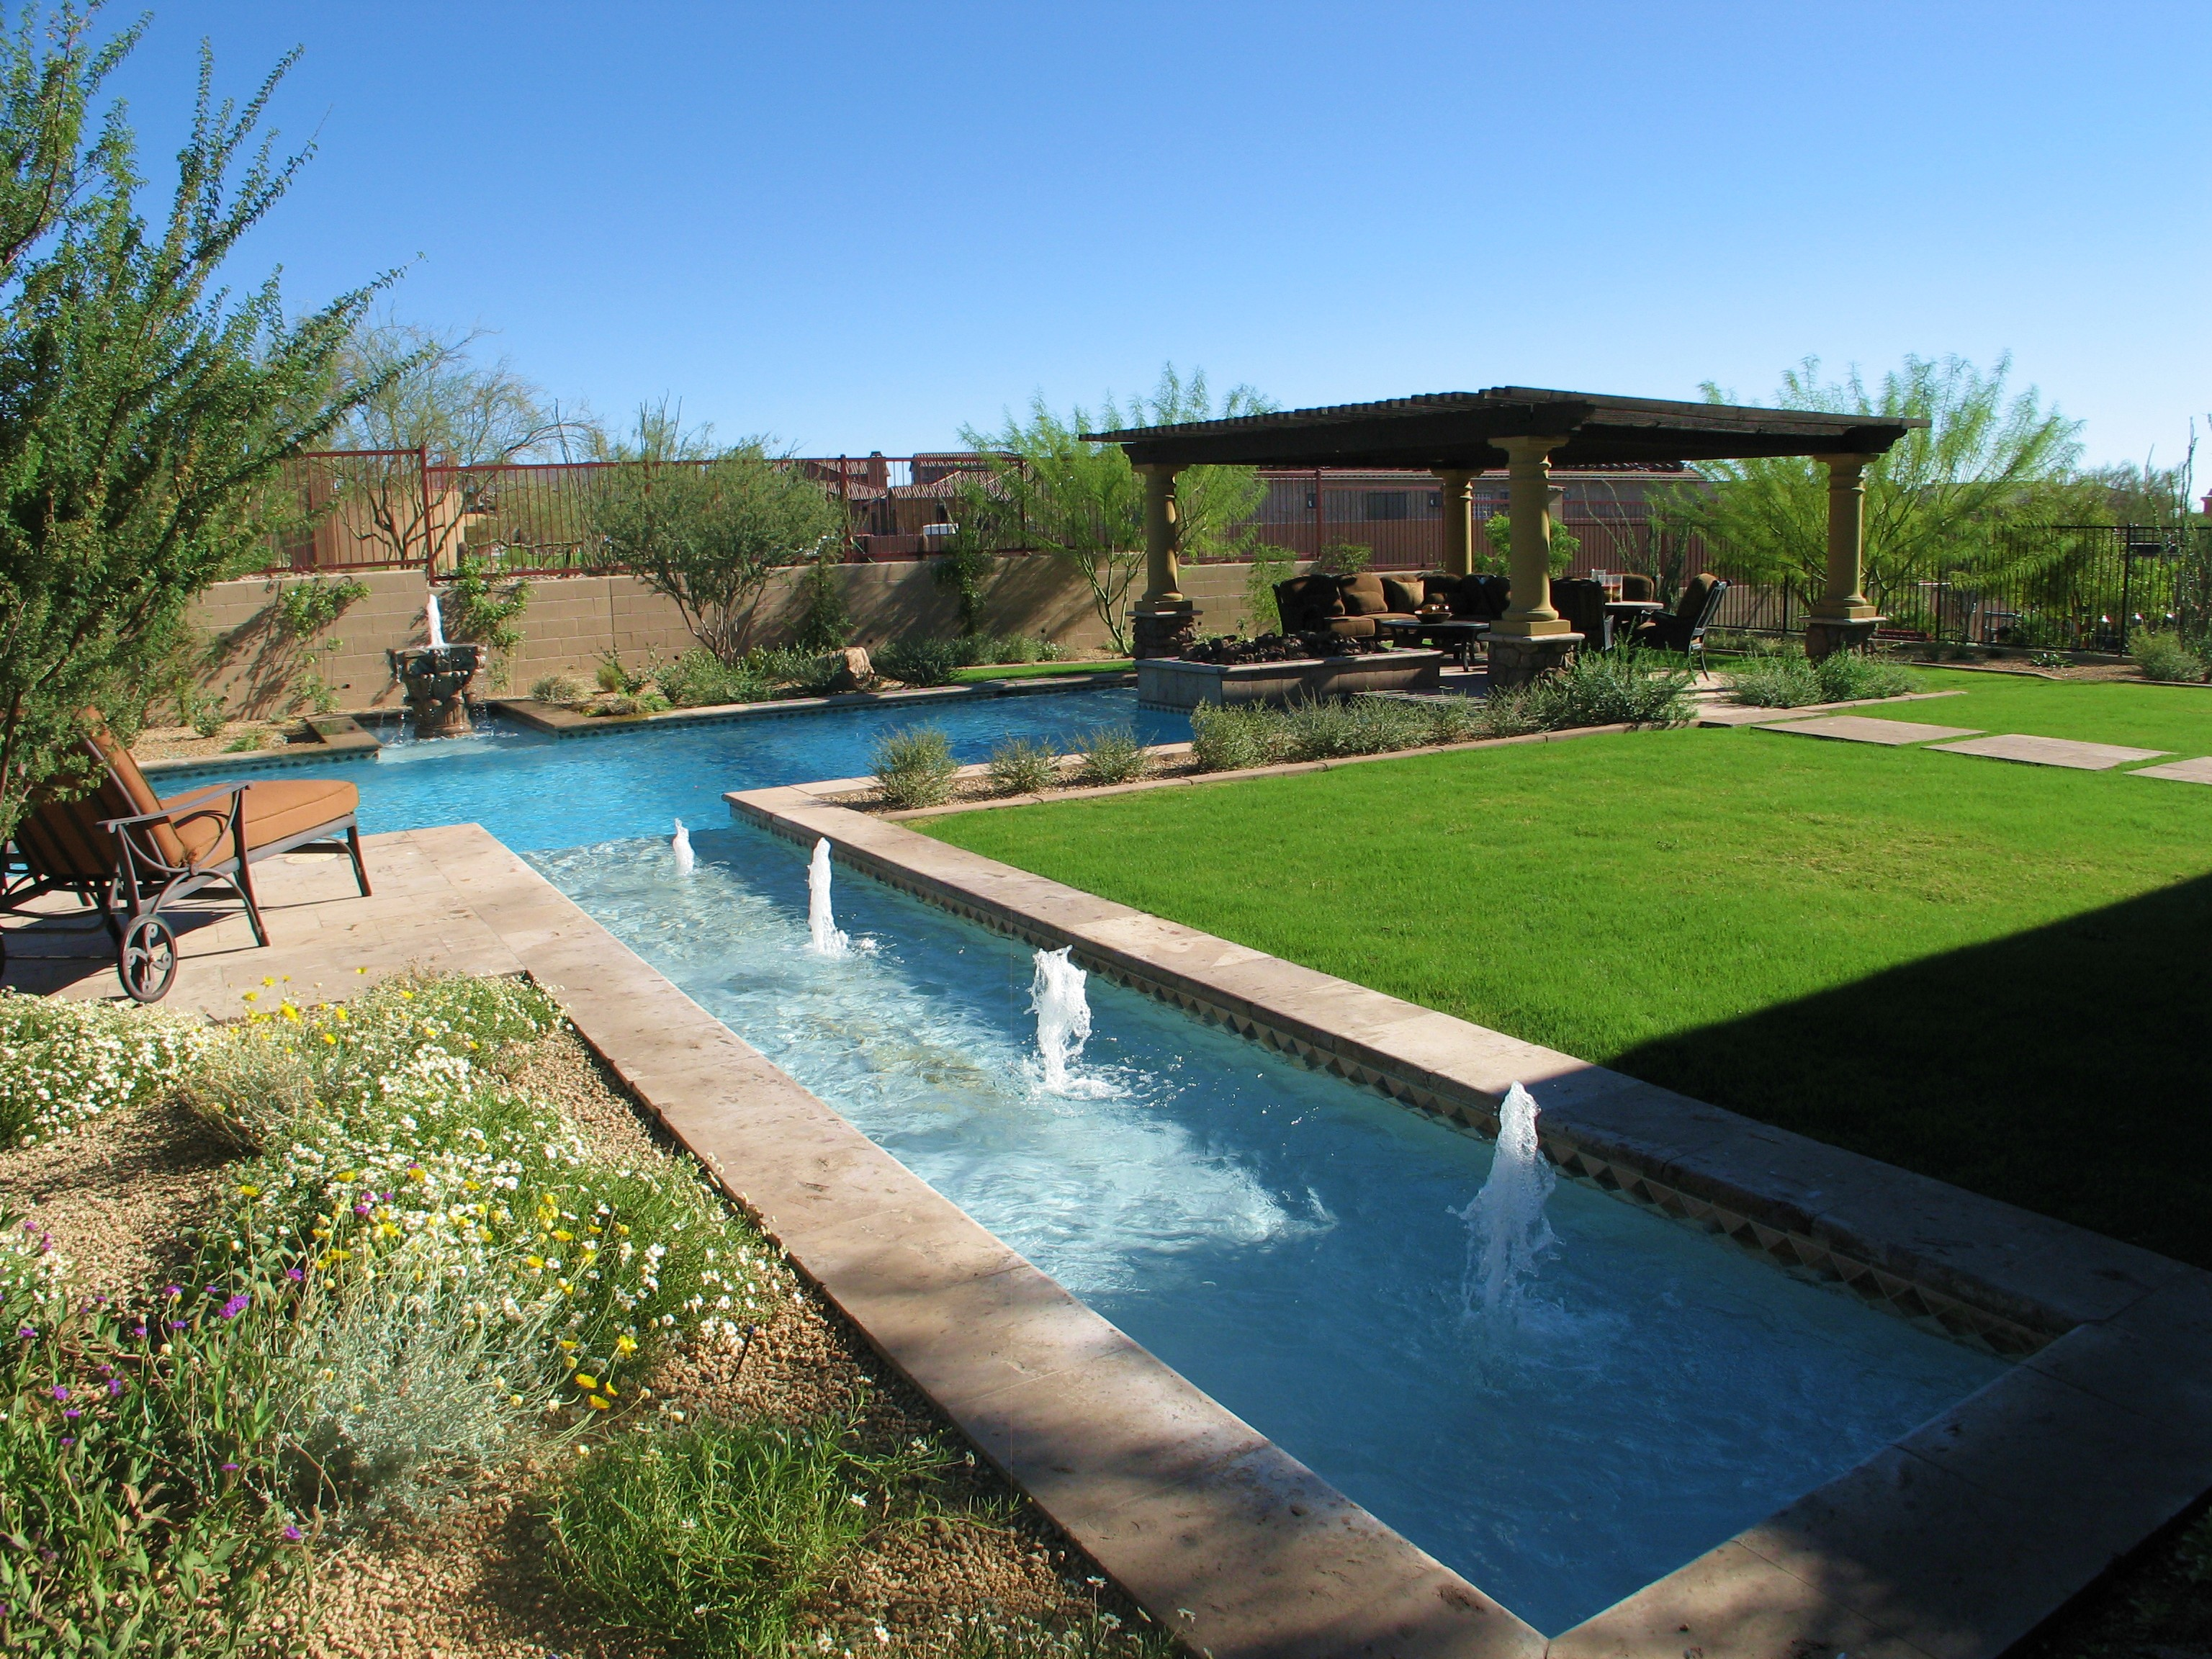 33 Jacuzzi Pools For Your Home on Modern Backyard Ideas With Pool id=74335